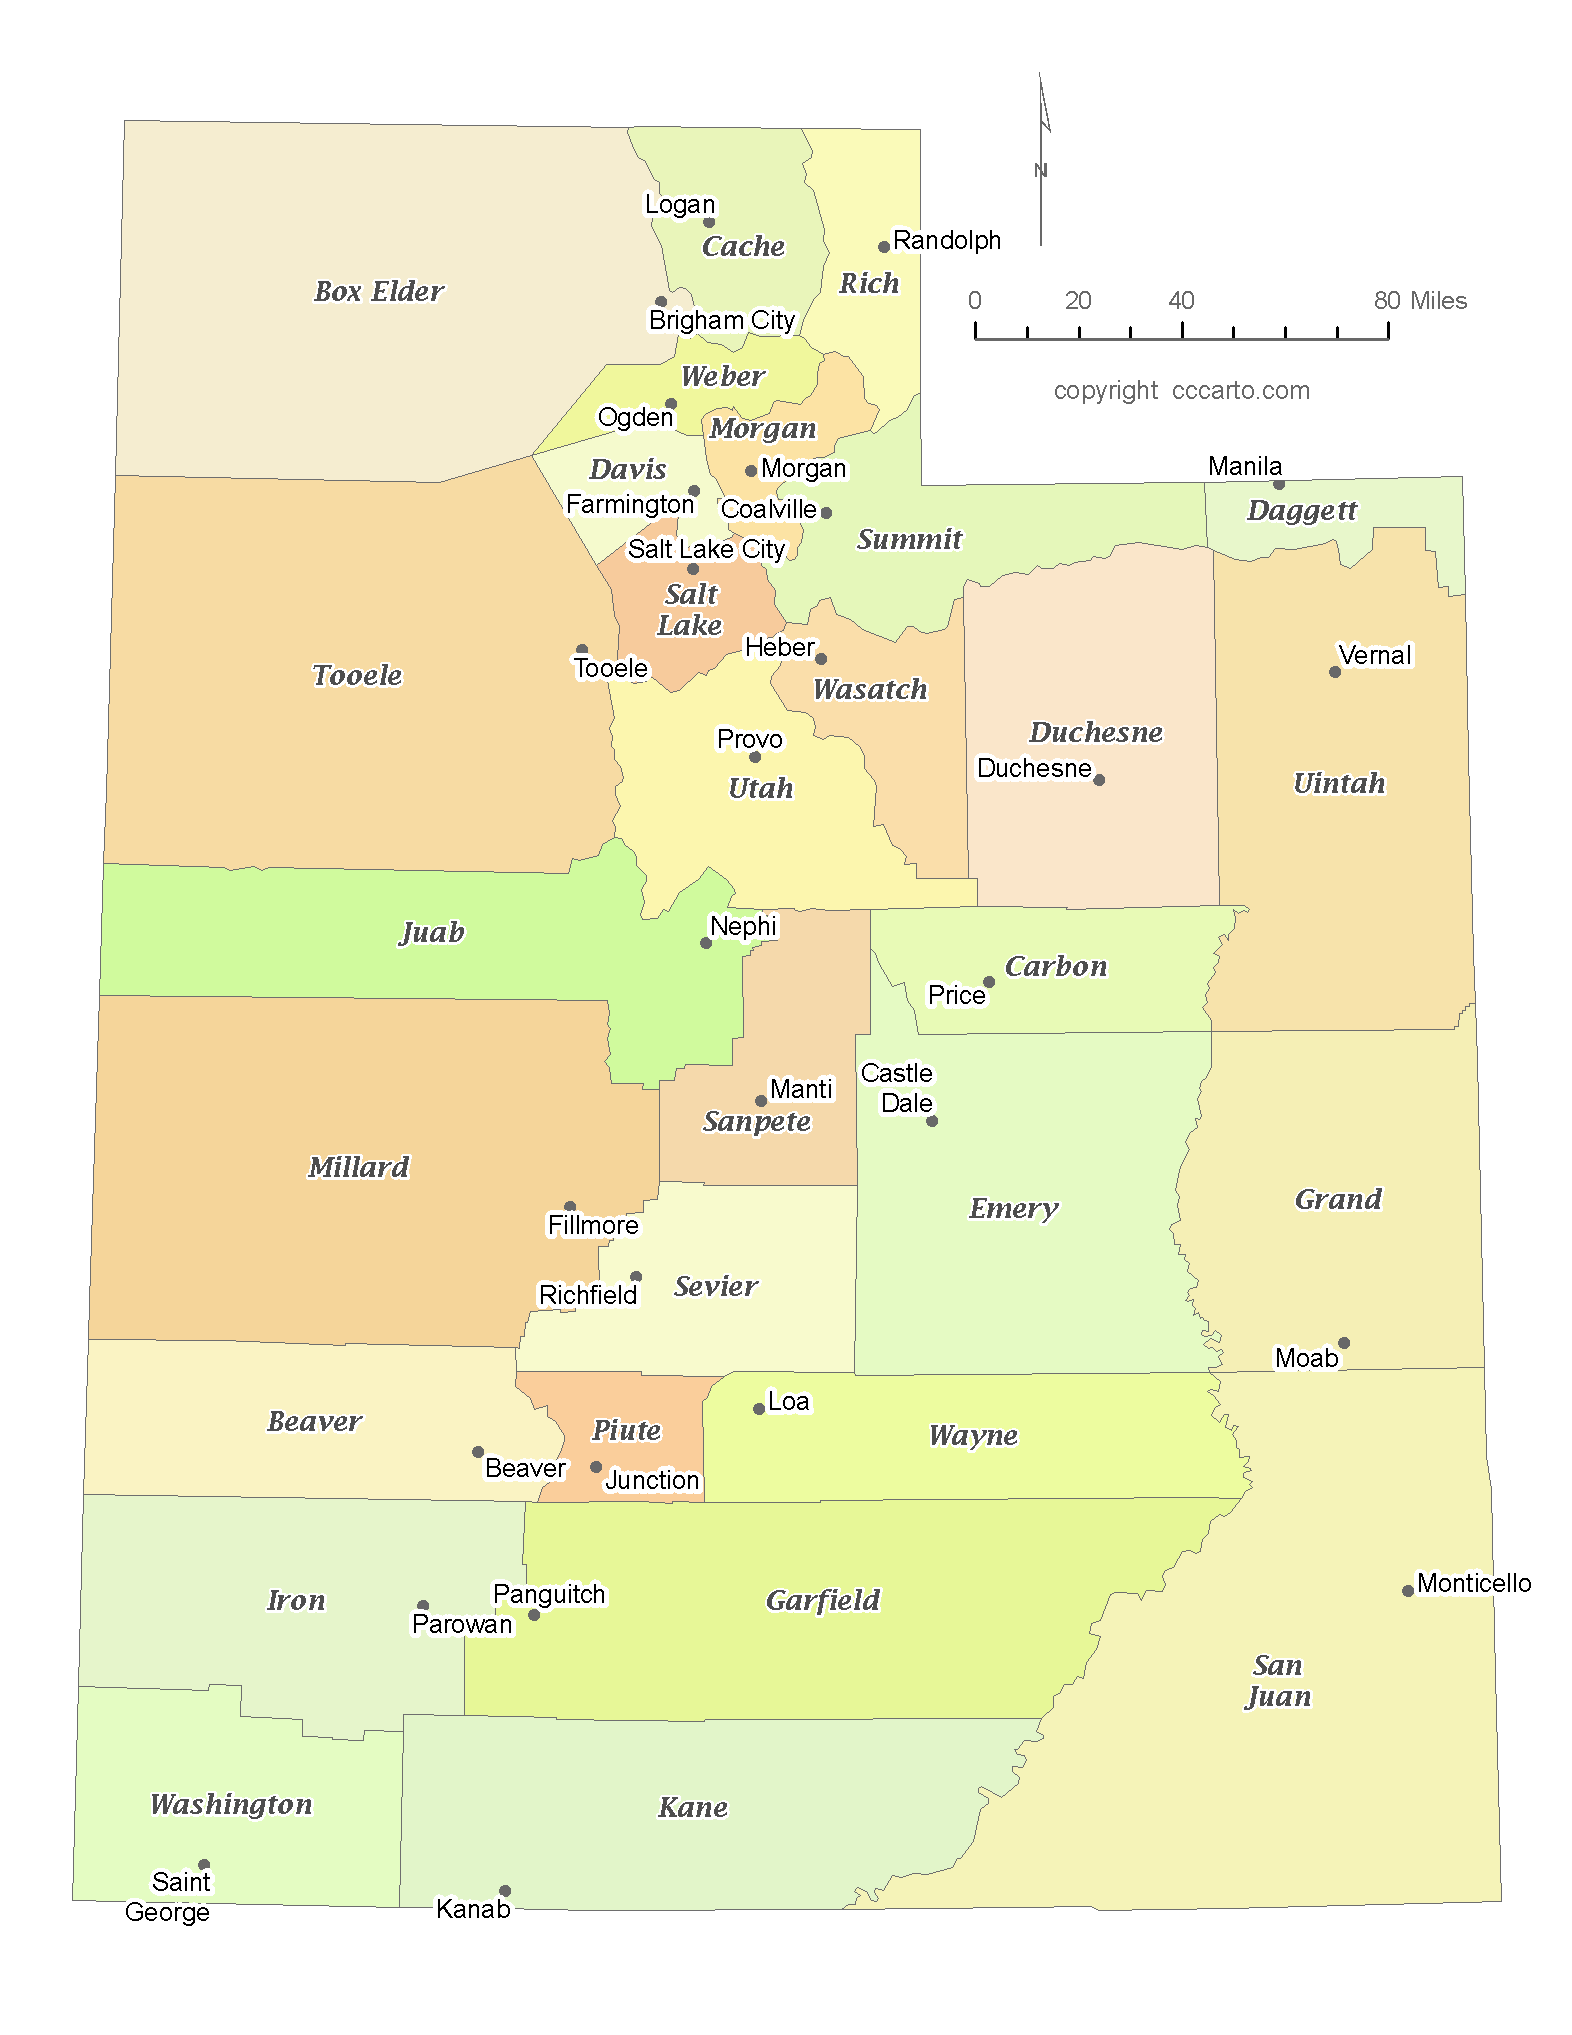 State of Utah County Map with the County Seats - CCCarto on map of summit, utah state counties, map of emery, map of millard, map of education, map of kane, map of tooele, map of north ga, map of utilities, blank map utah counties, map idaho counties, map of wasatch front, map of washington, map of alaska boroughs, map of pennsylvania towns, map of cities, map of states, map of salt lake, map of transportation, map of wayne,